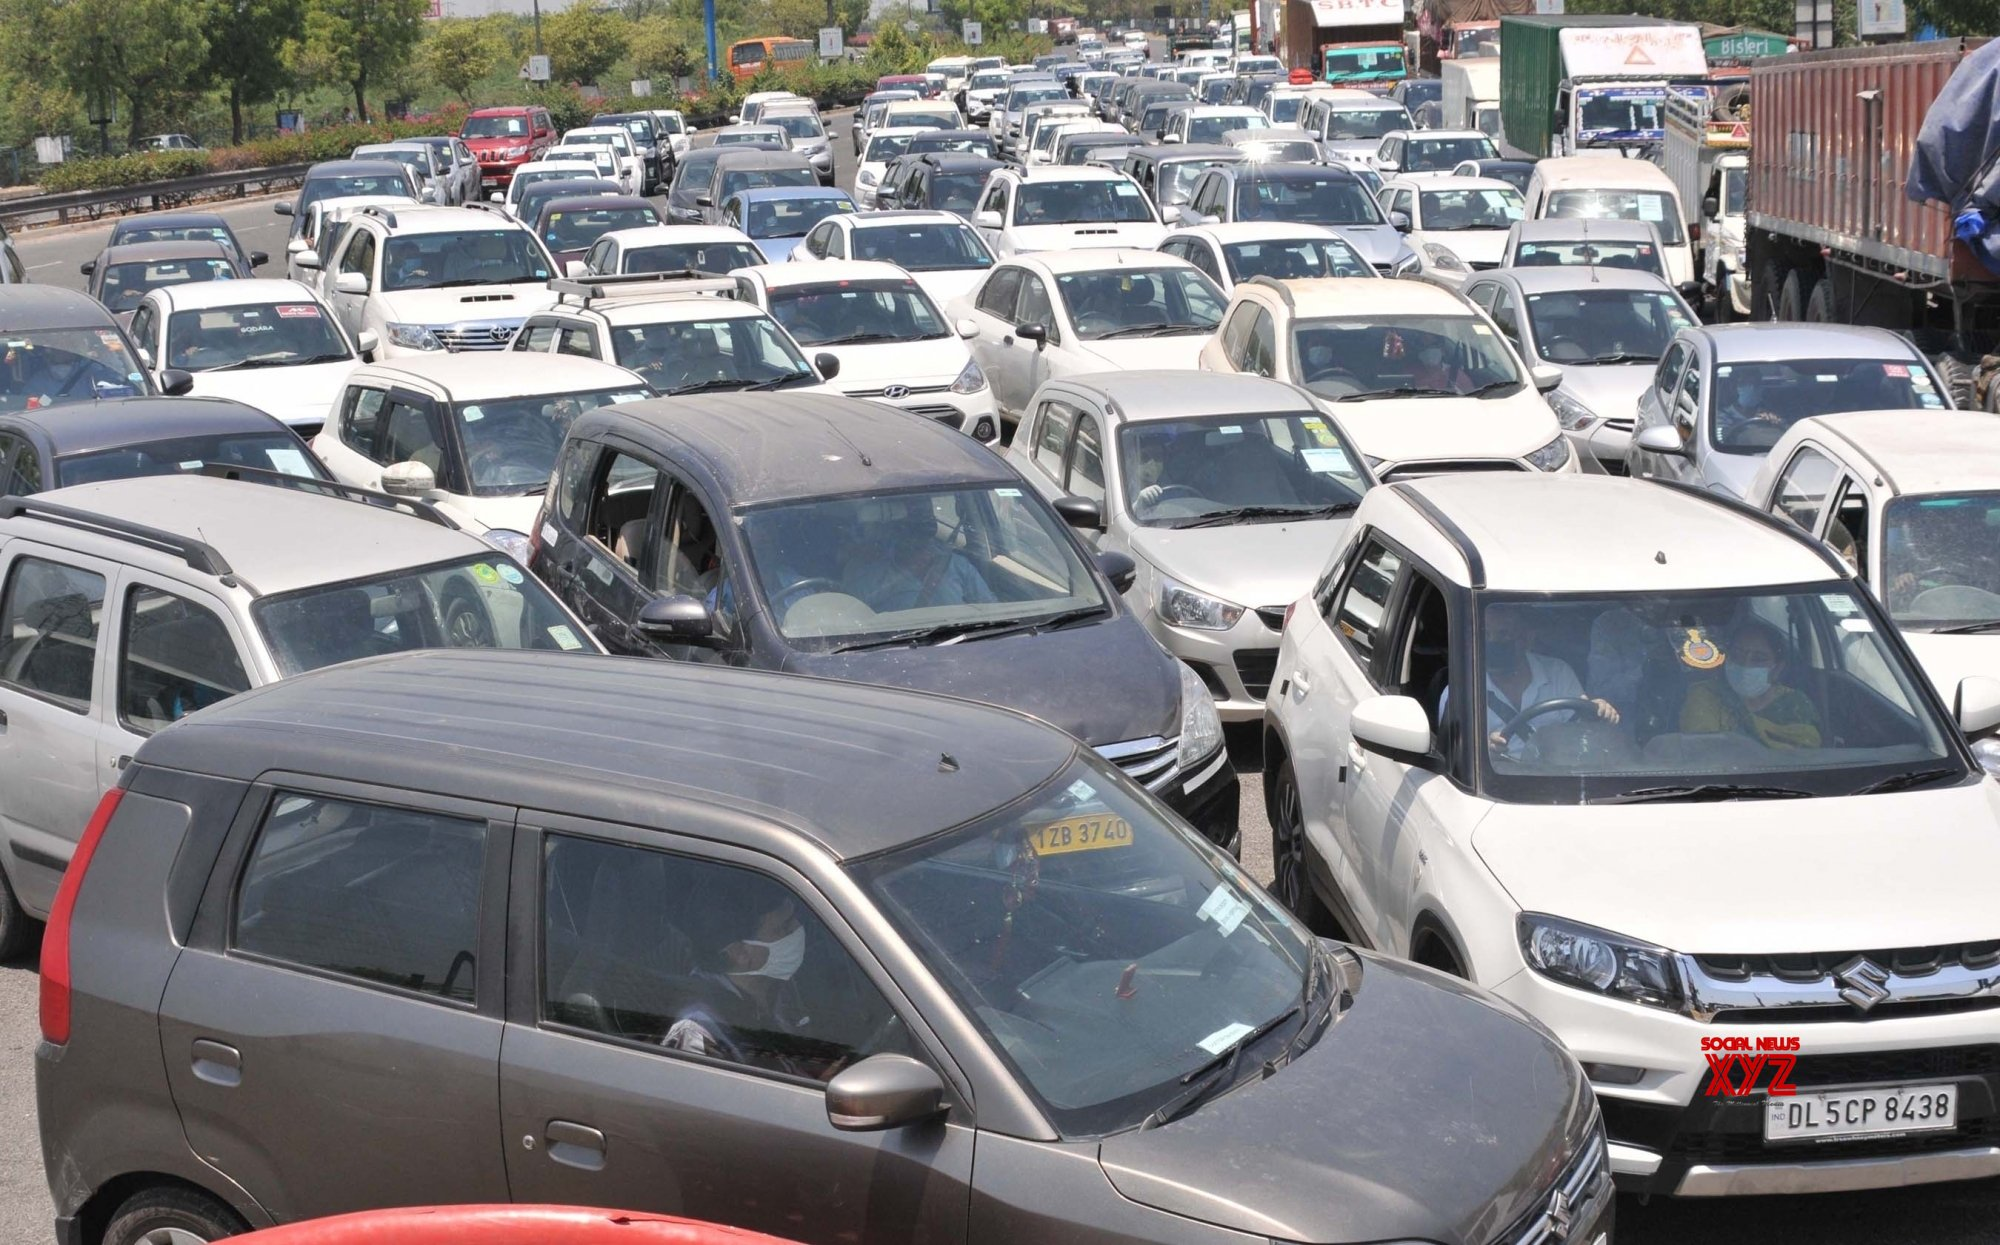 New Delhi: DND Flyway witnesses massive traffic jam as curbs ease during lockdown - 4 #Gallery